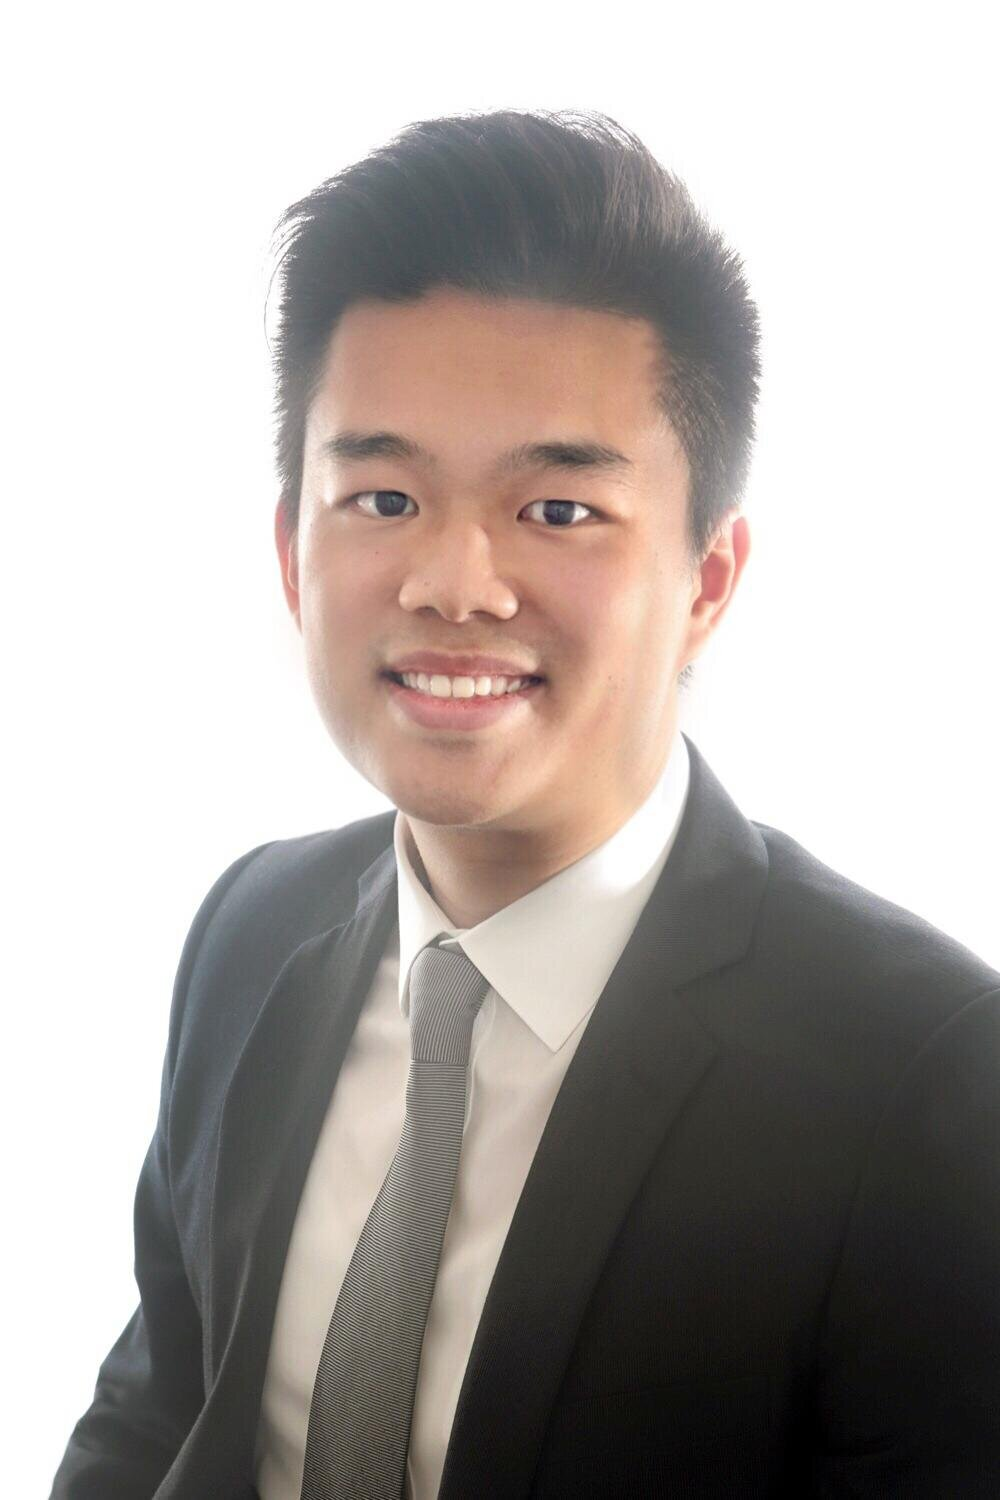 Kin Lon Li, Research Consultant - Hong Kong - Kin joined as a Research Consultant in July 2018, and focuses on APAC Markets. He joined from the University of British Columbia where he graduated with a Bachelors of Arts in Psychology. Before joining Arion House, Kin Lon completed internships at the South China Morning Post and the Hong Kong Government. He is fluent in English, Cantonese and Mandarin.E: kli@arionhouse.comD: +852 9042 3593